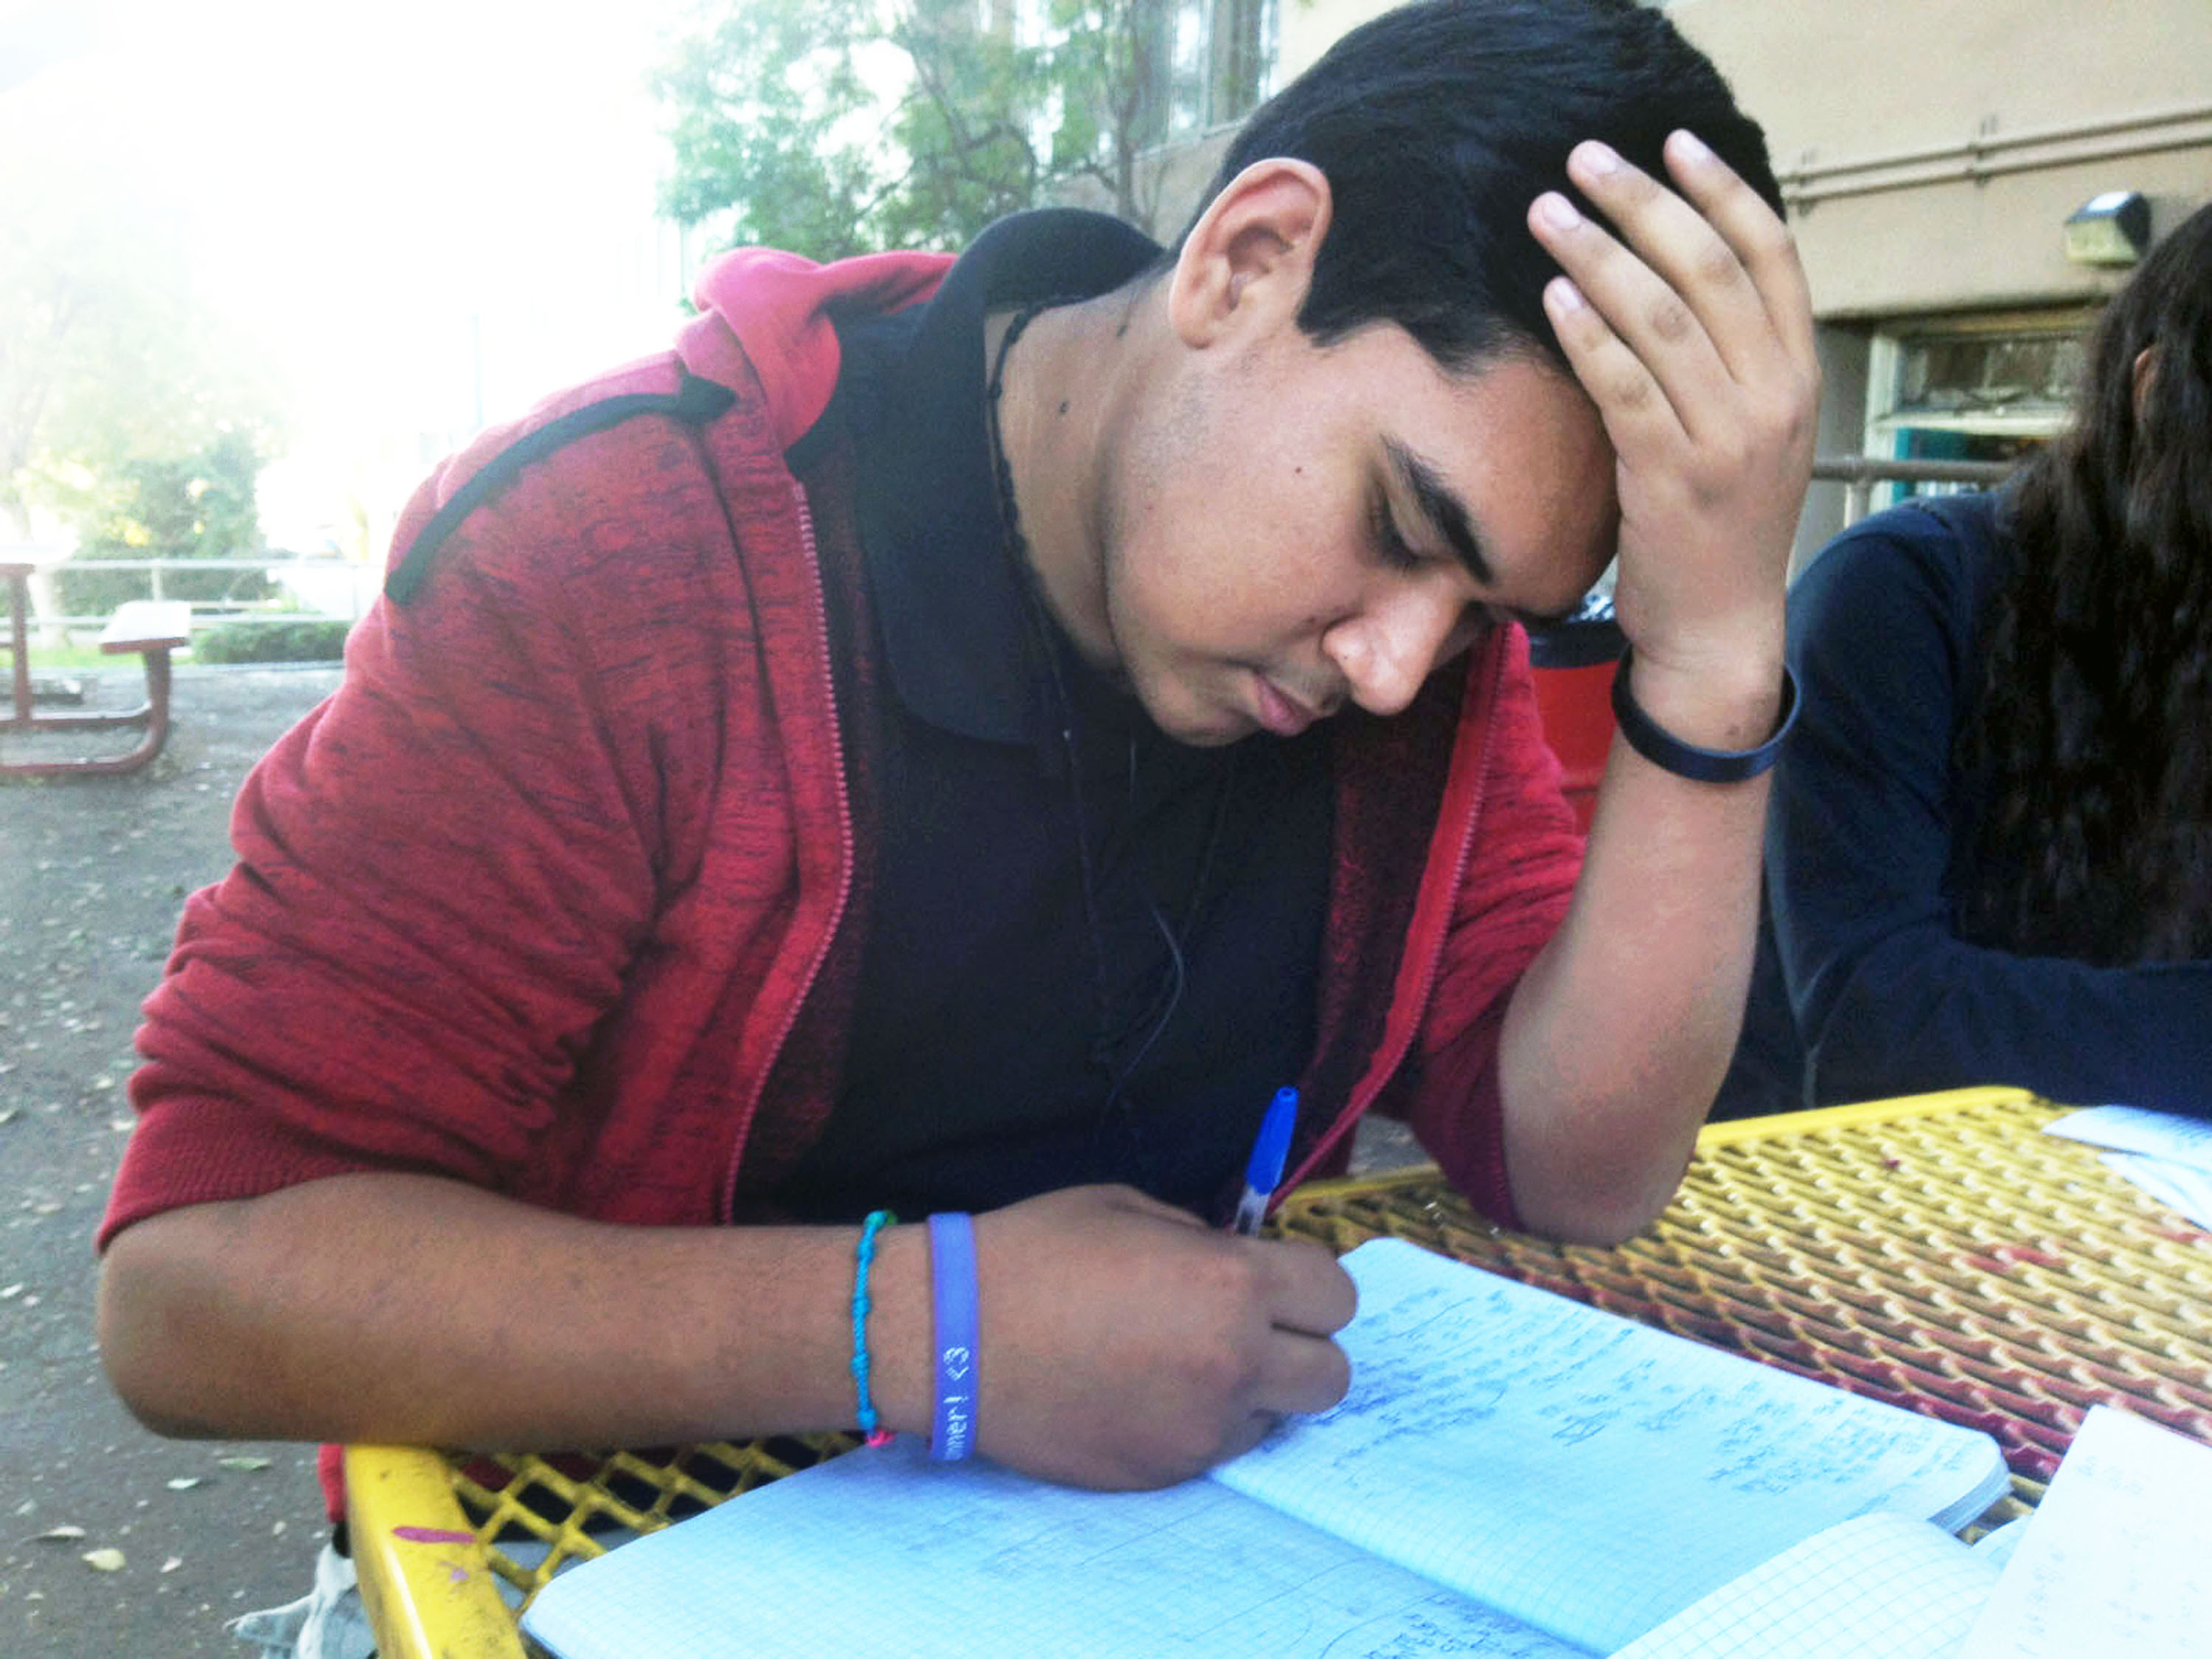 boyle heights beat teen jobs boyle heights the high price of teen work <em>teens pitch in to boost family